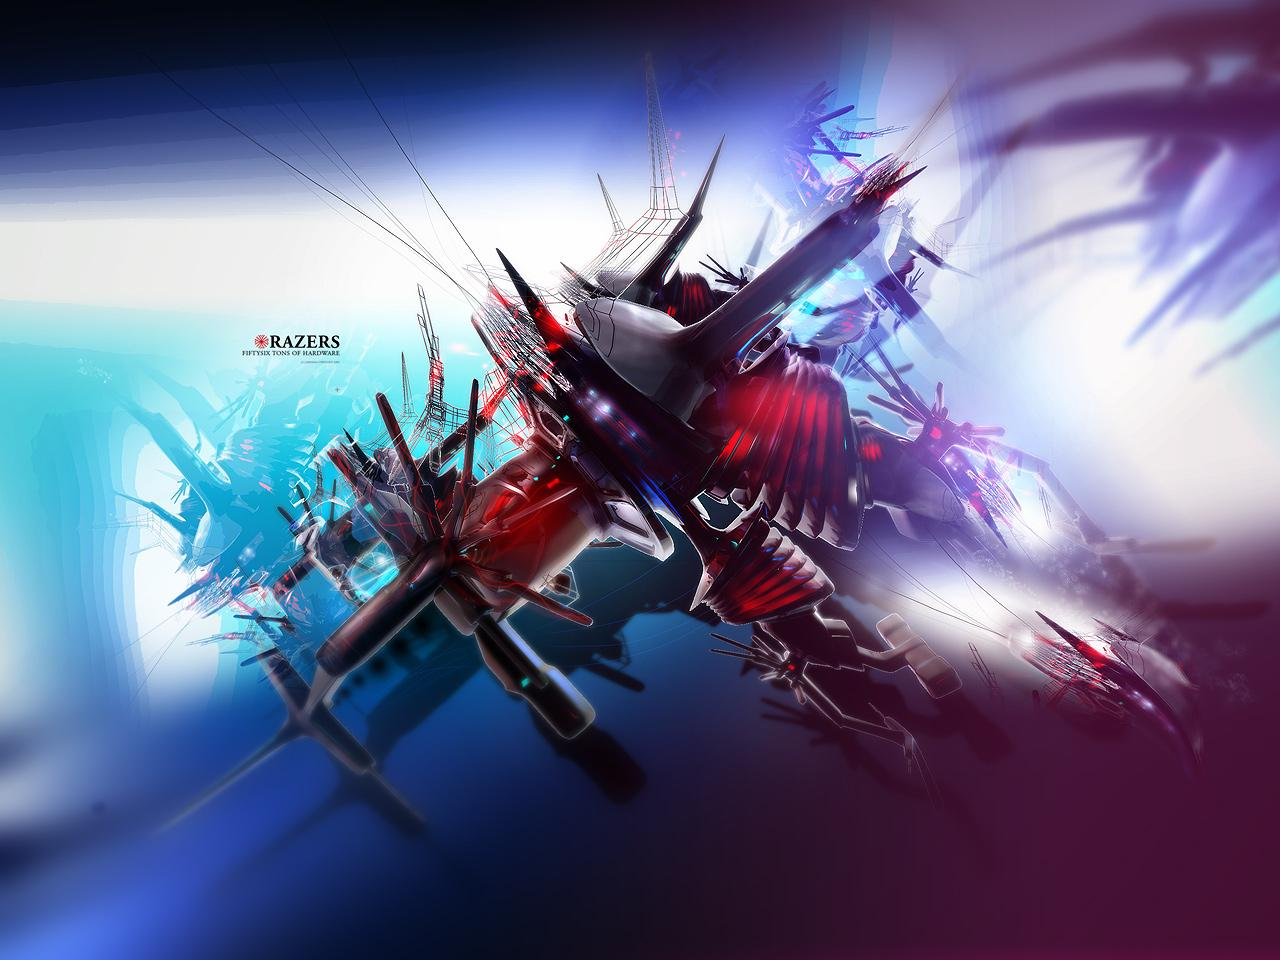 3d Abstract Wallpapers 2393 Hd Wallpapers in Abstract   Imagescicom 1280x960